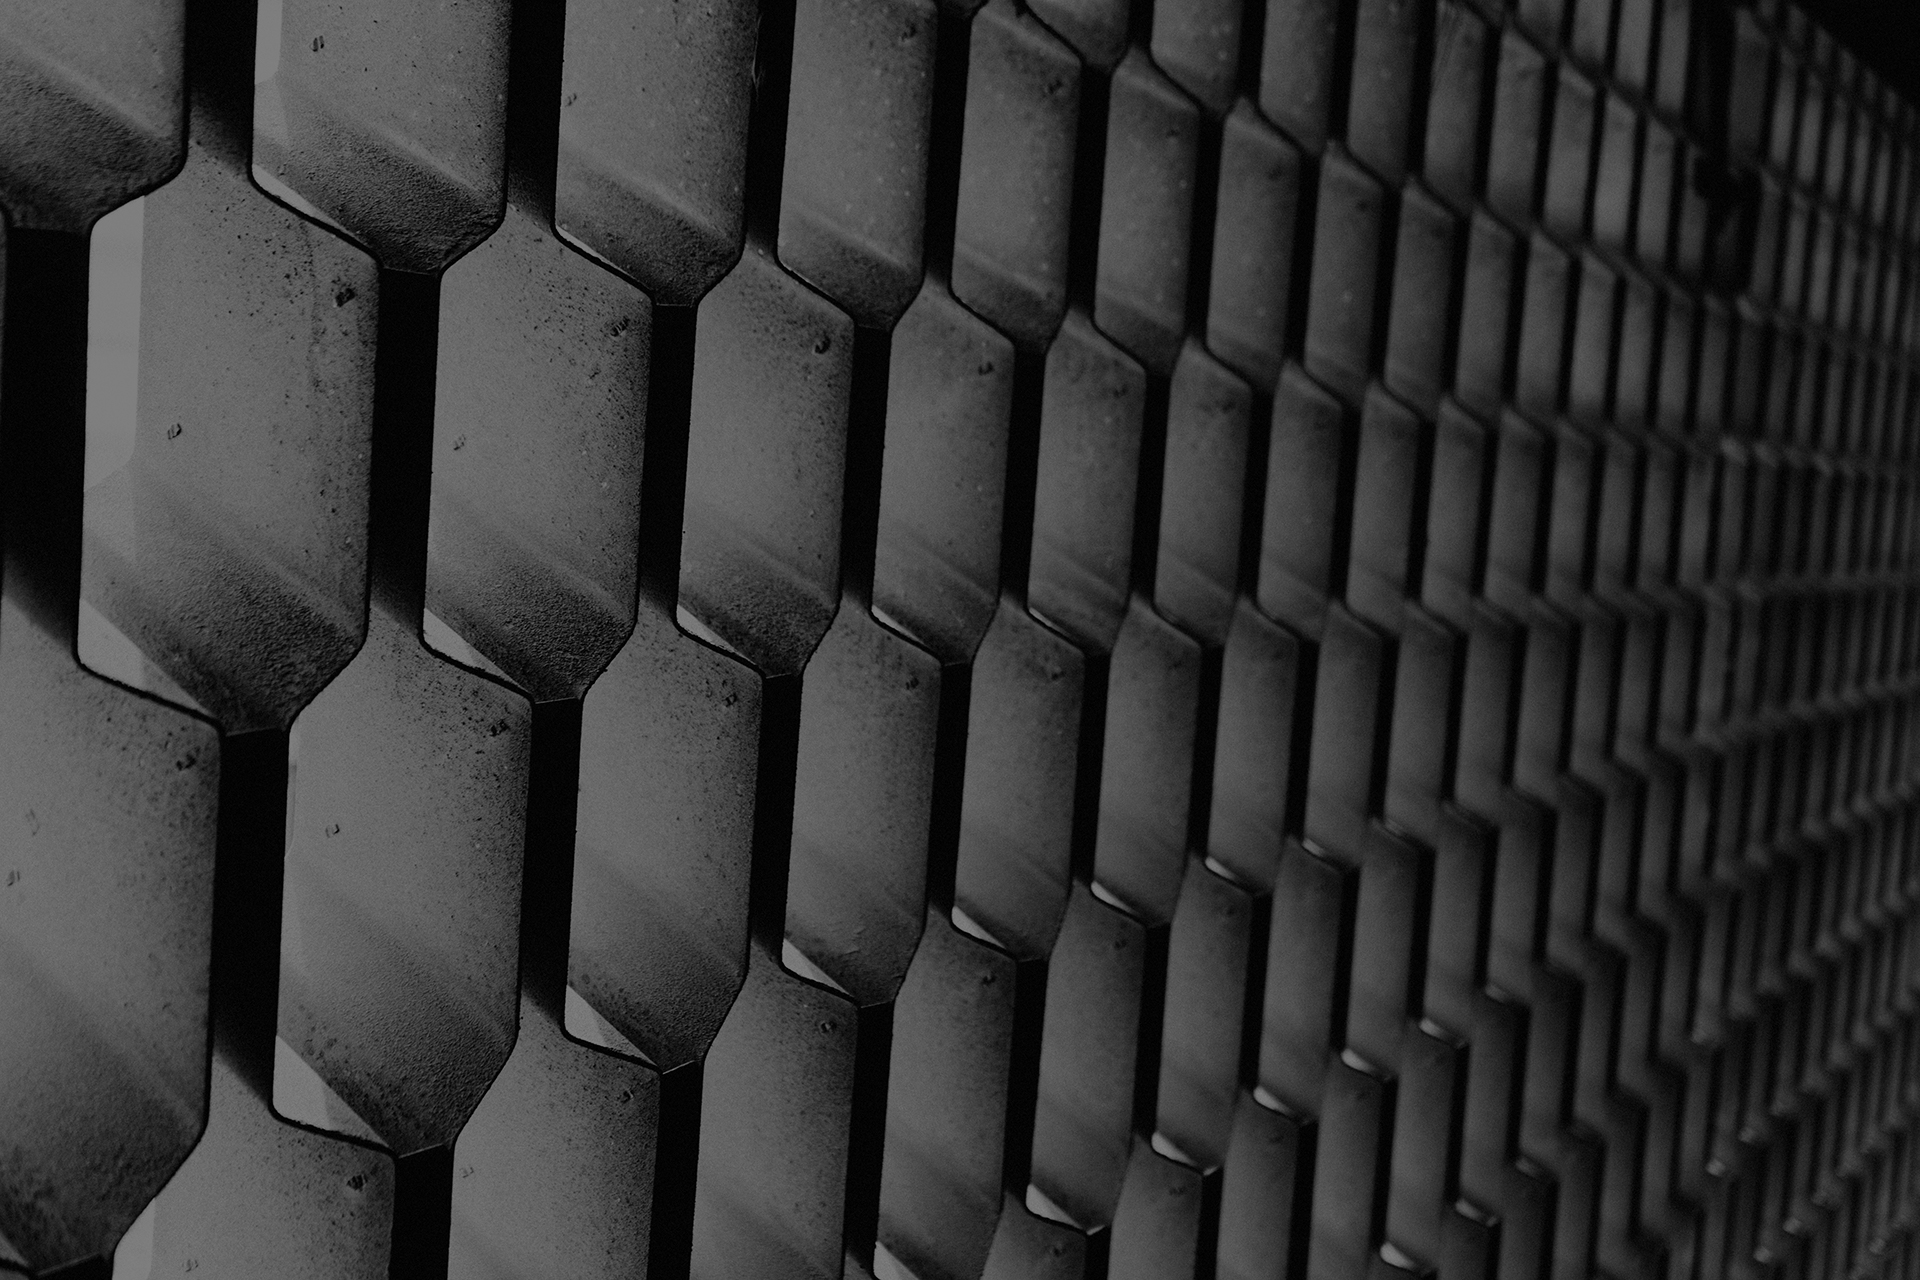 moorhouse-construction-metal-pattern